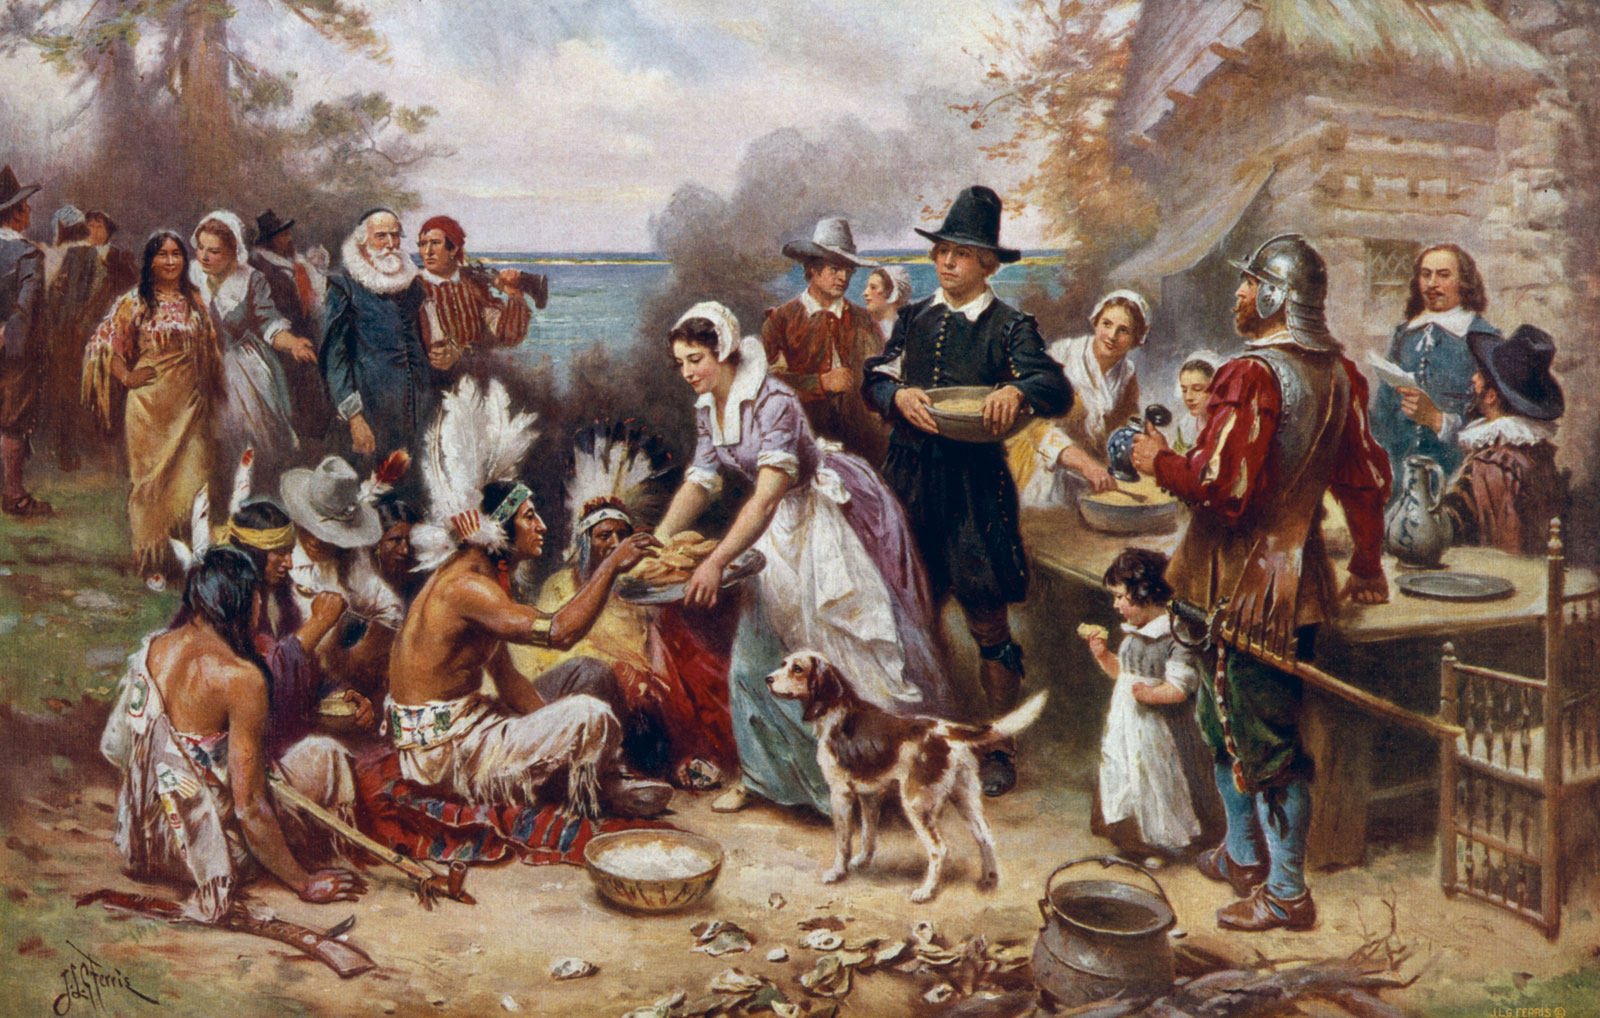 The First Thanksgiving by J.L.G. Ferris Where Did Thanksgiving Come From and Why Do We Celebrate It?